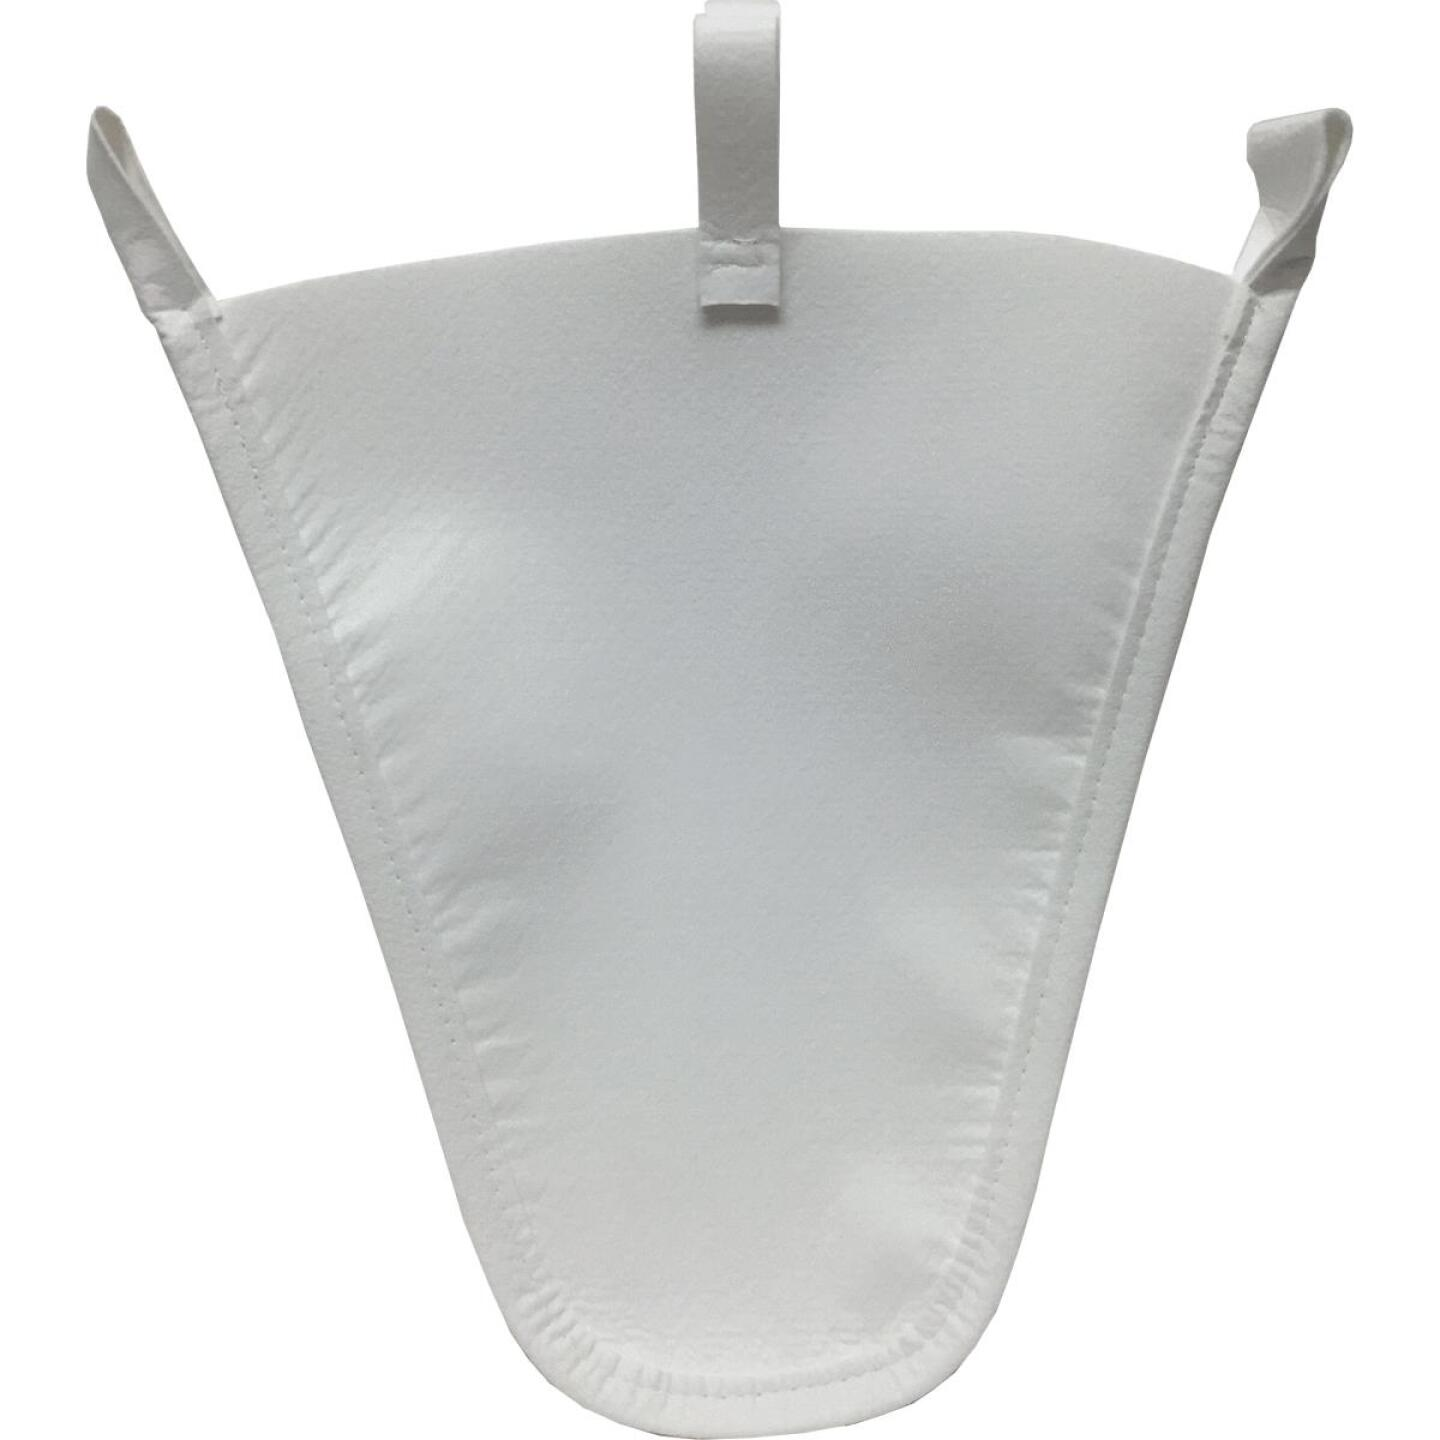 CDL Orlon Filter Bag Image 2